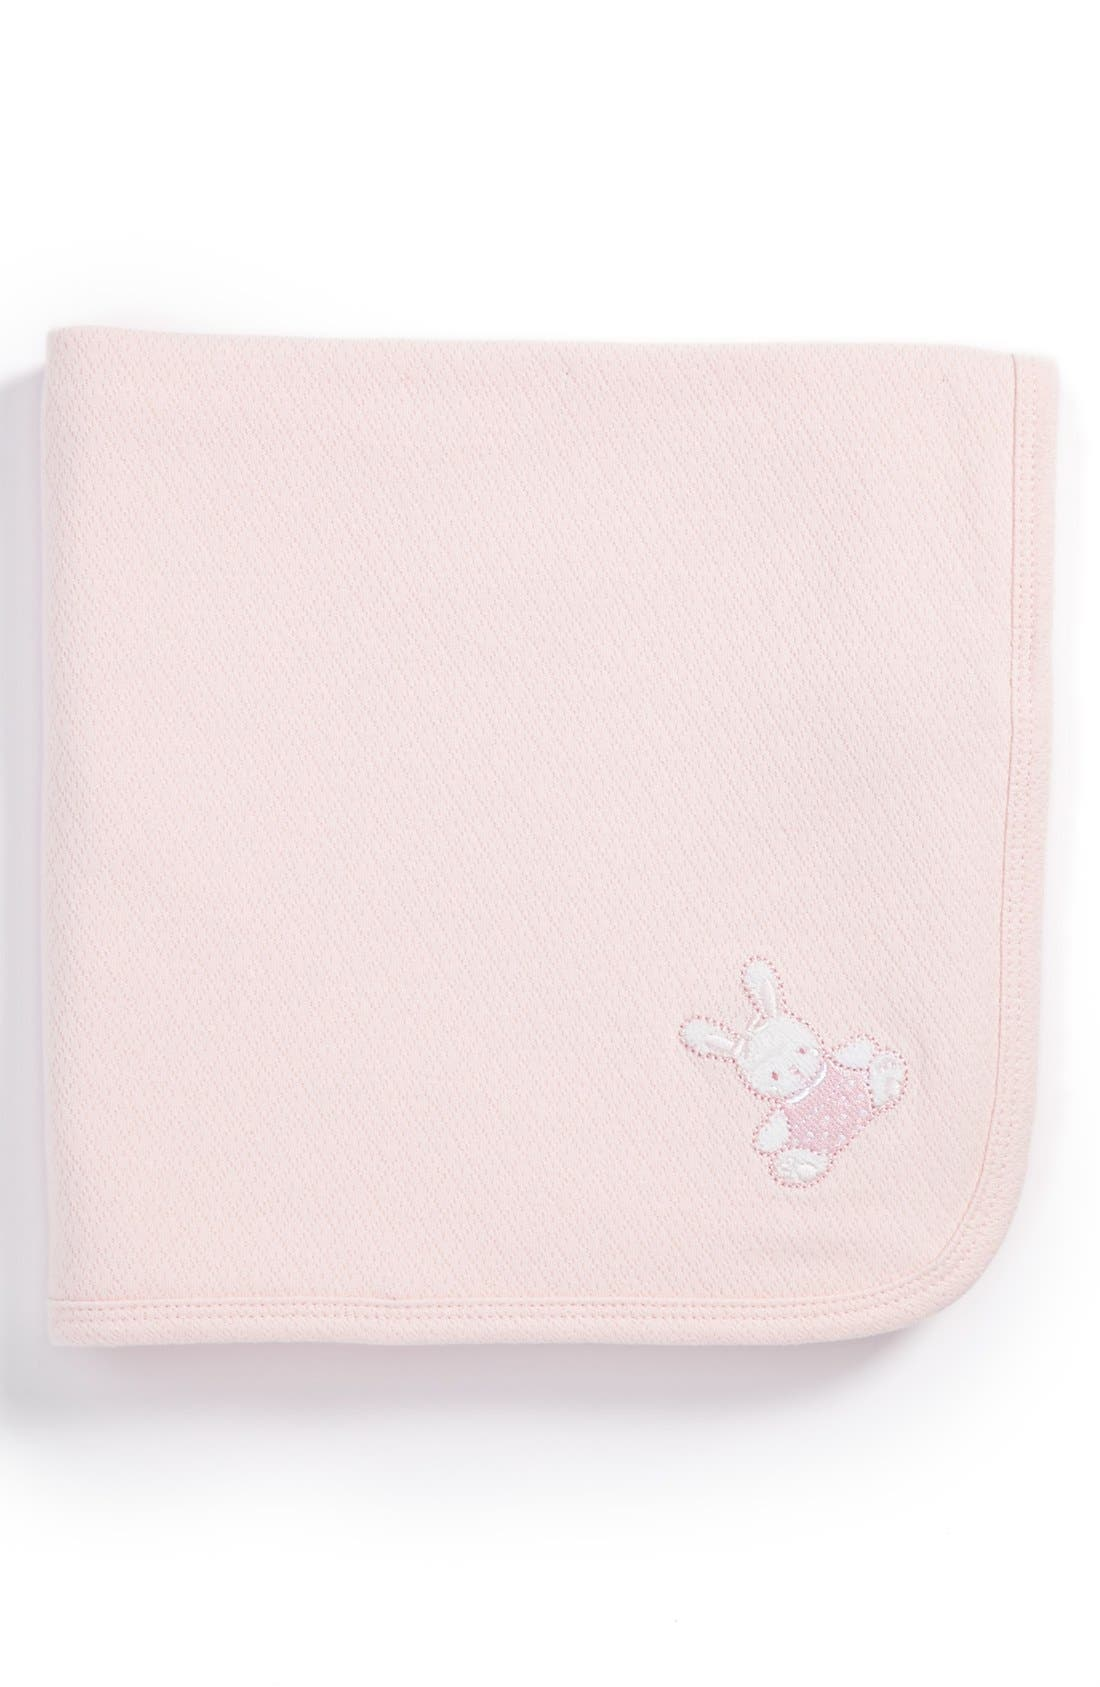 Main Image - Little Me 'Pretty Bunny' Receiving Blanket